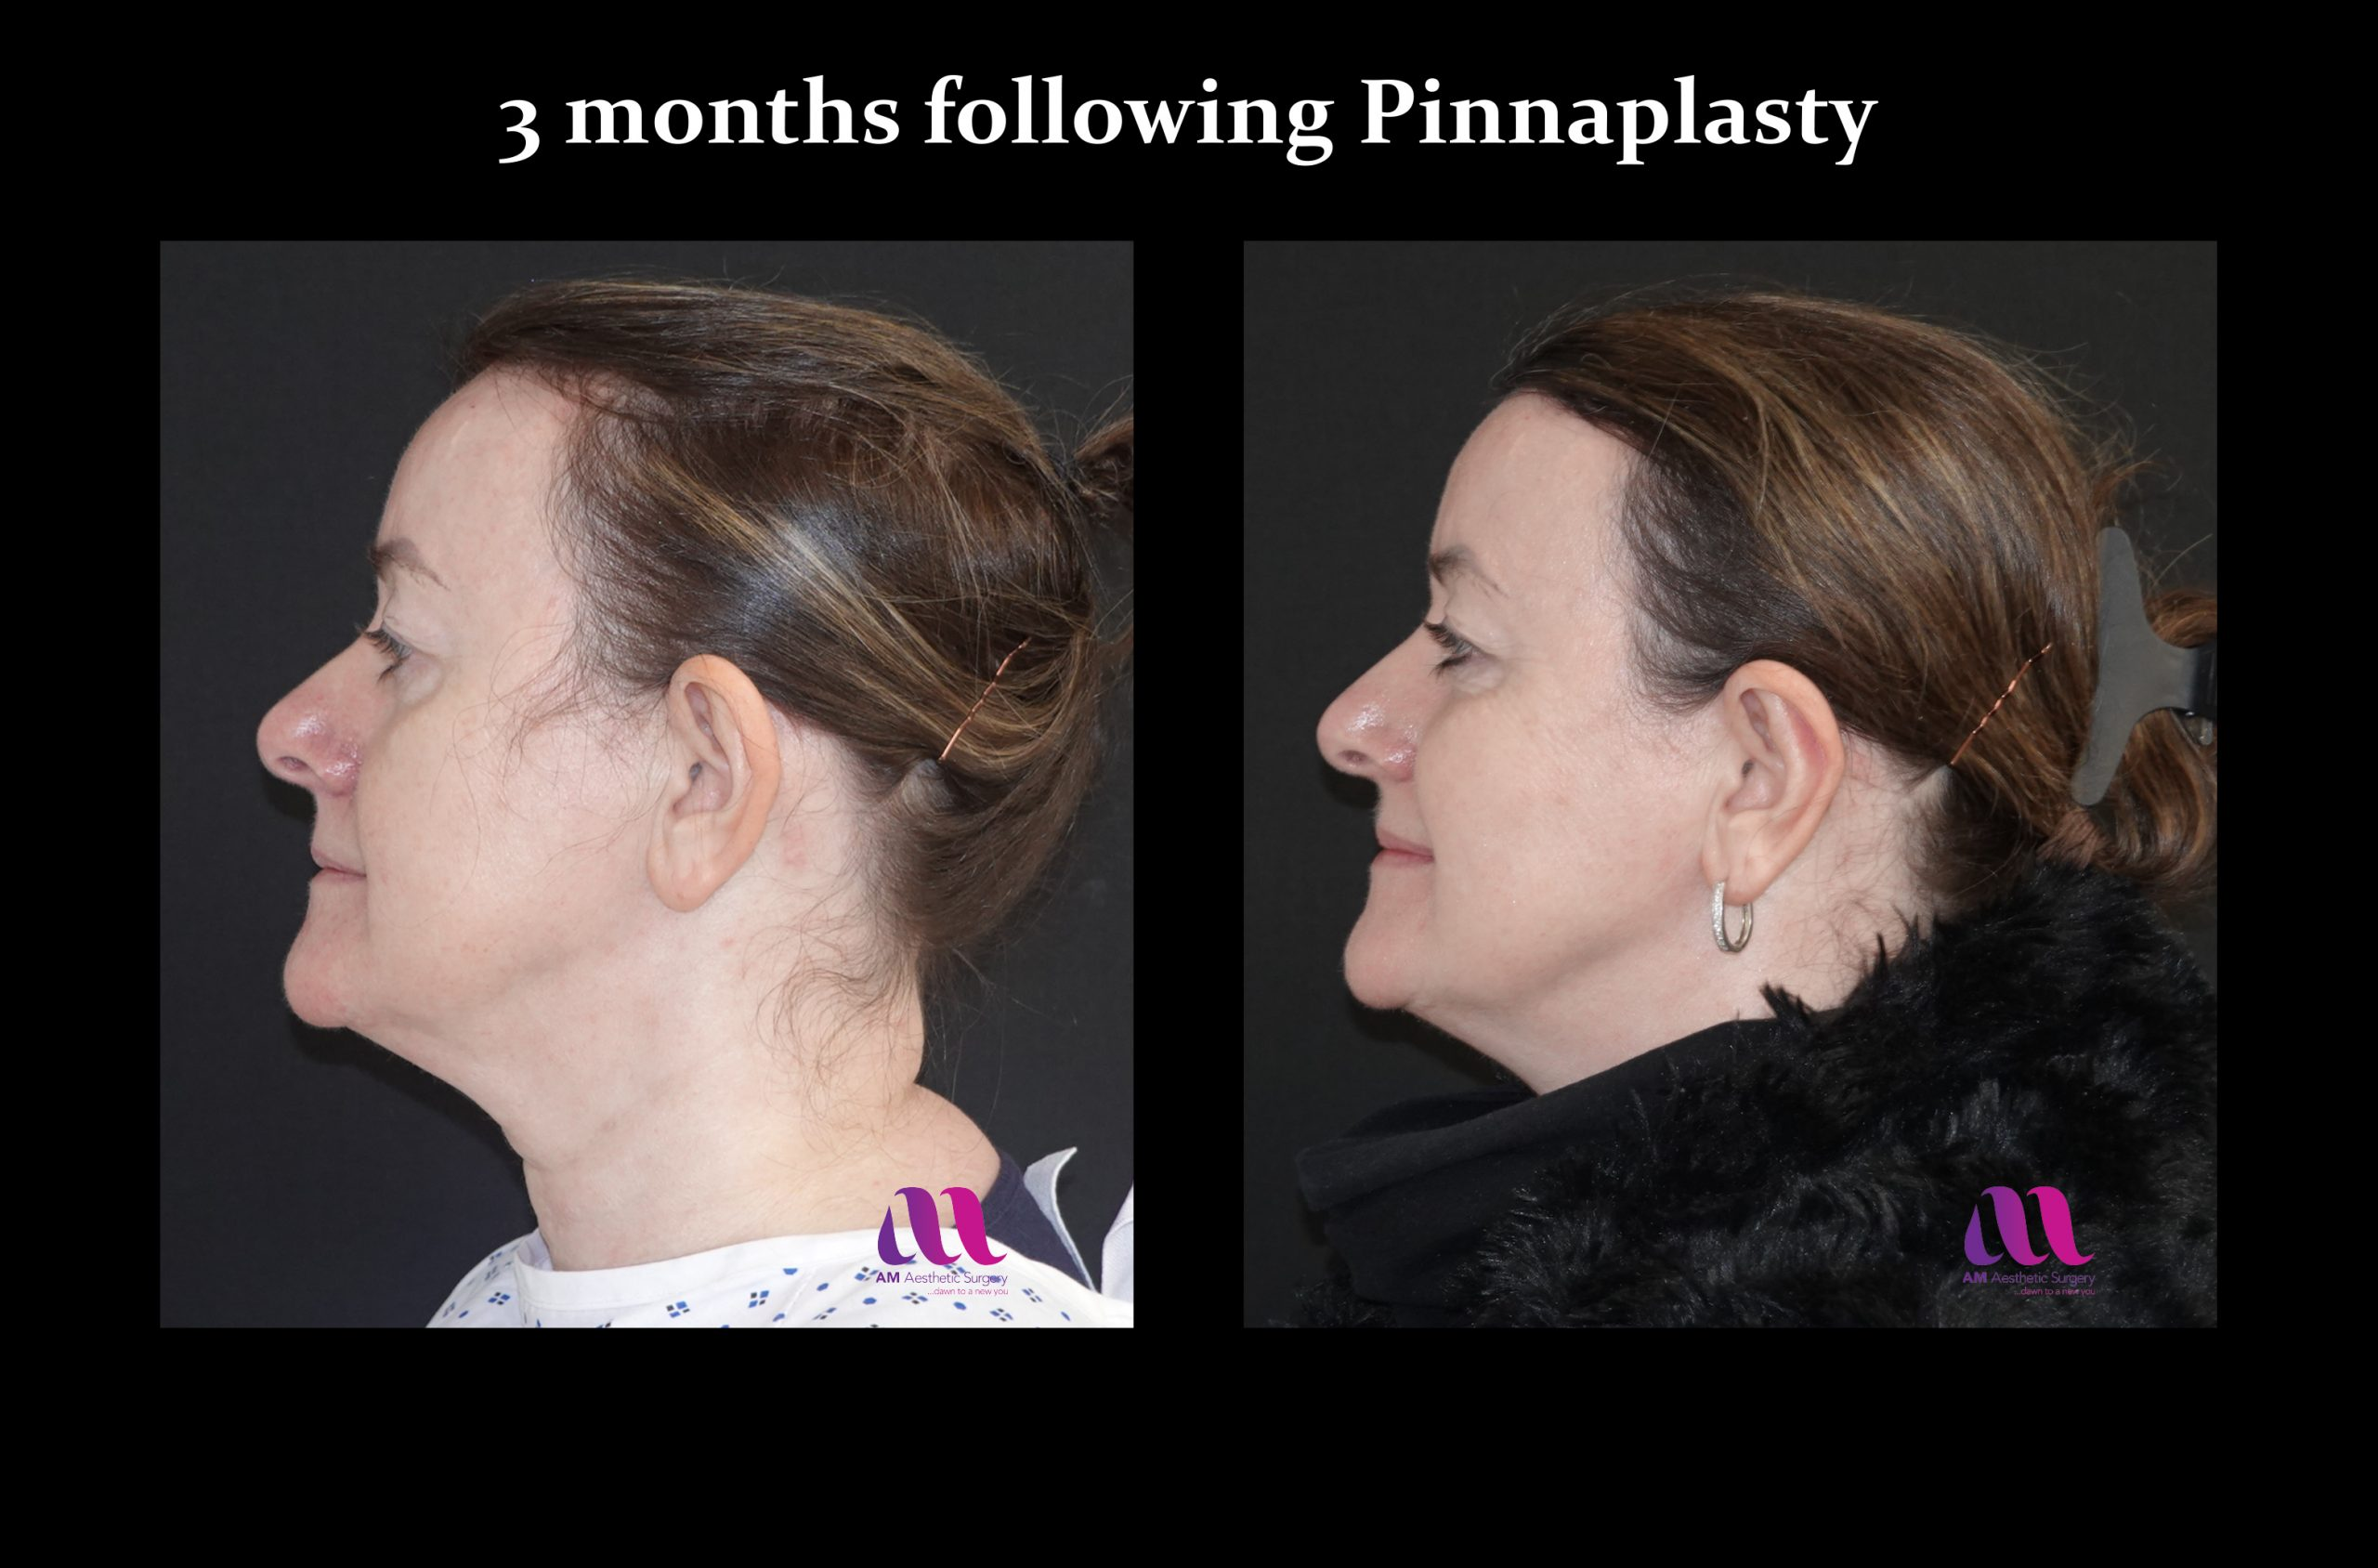 Pinnaplasty2c